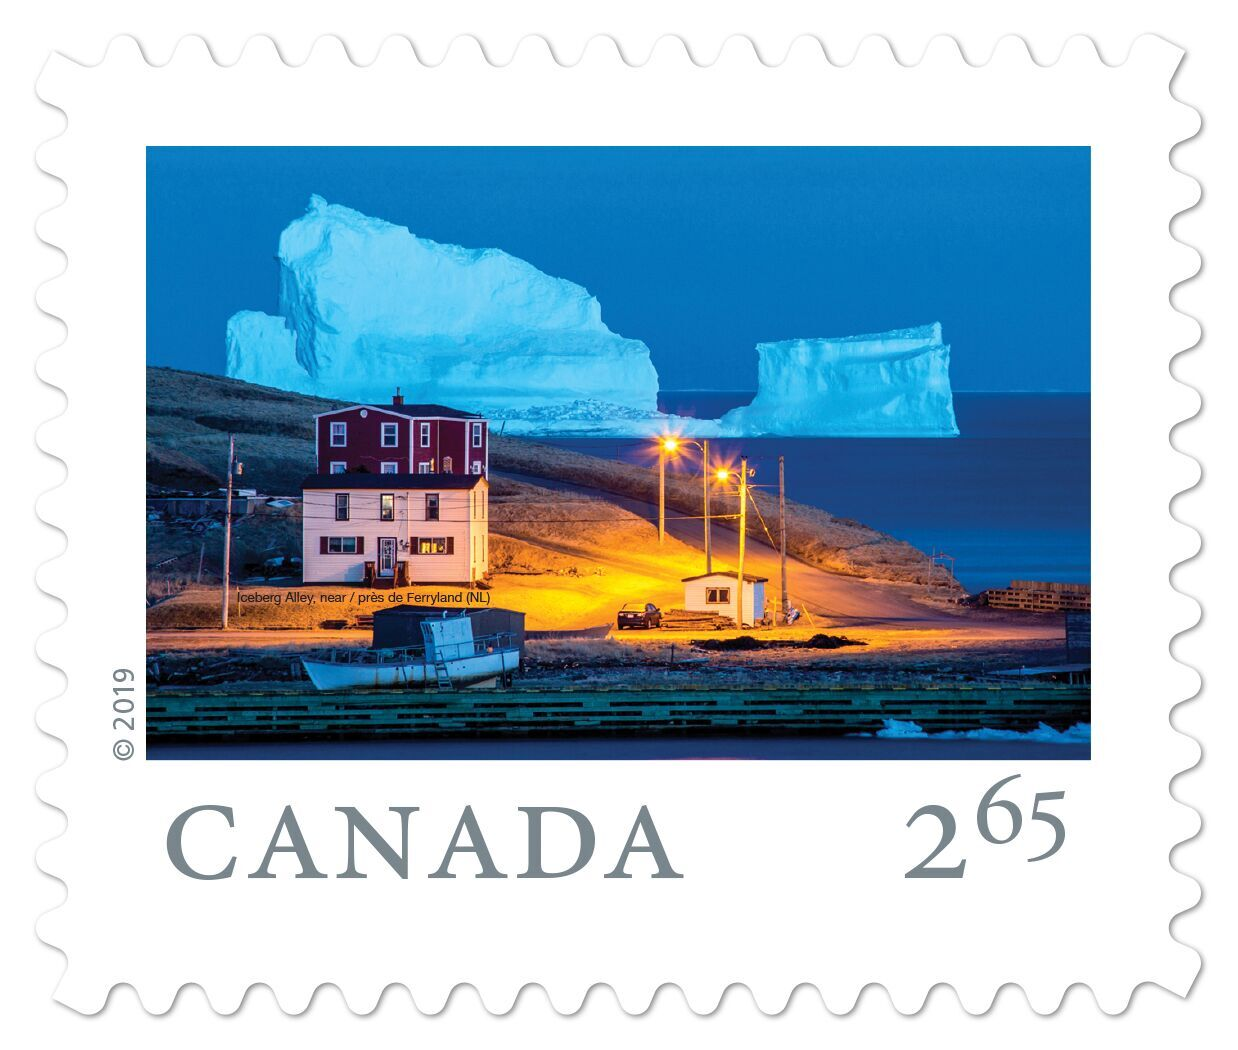 Canada - From Far and Wide (January 14, 2019) Iceberg Alley, Newfoundland (international rate from booklet of 6)